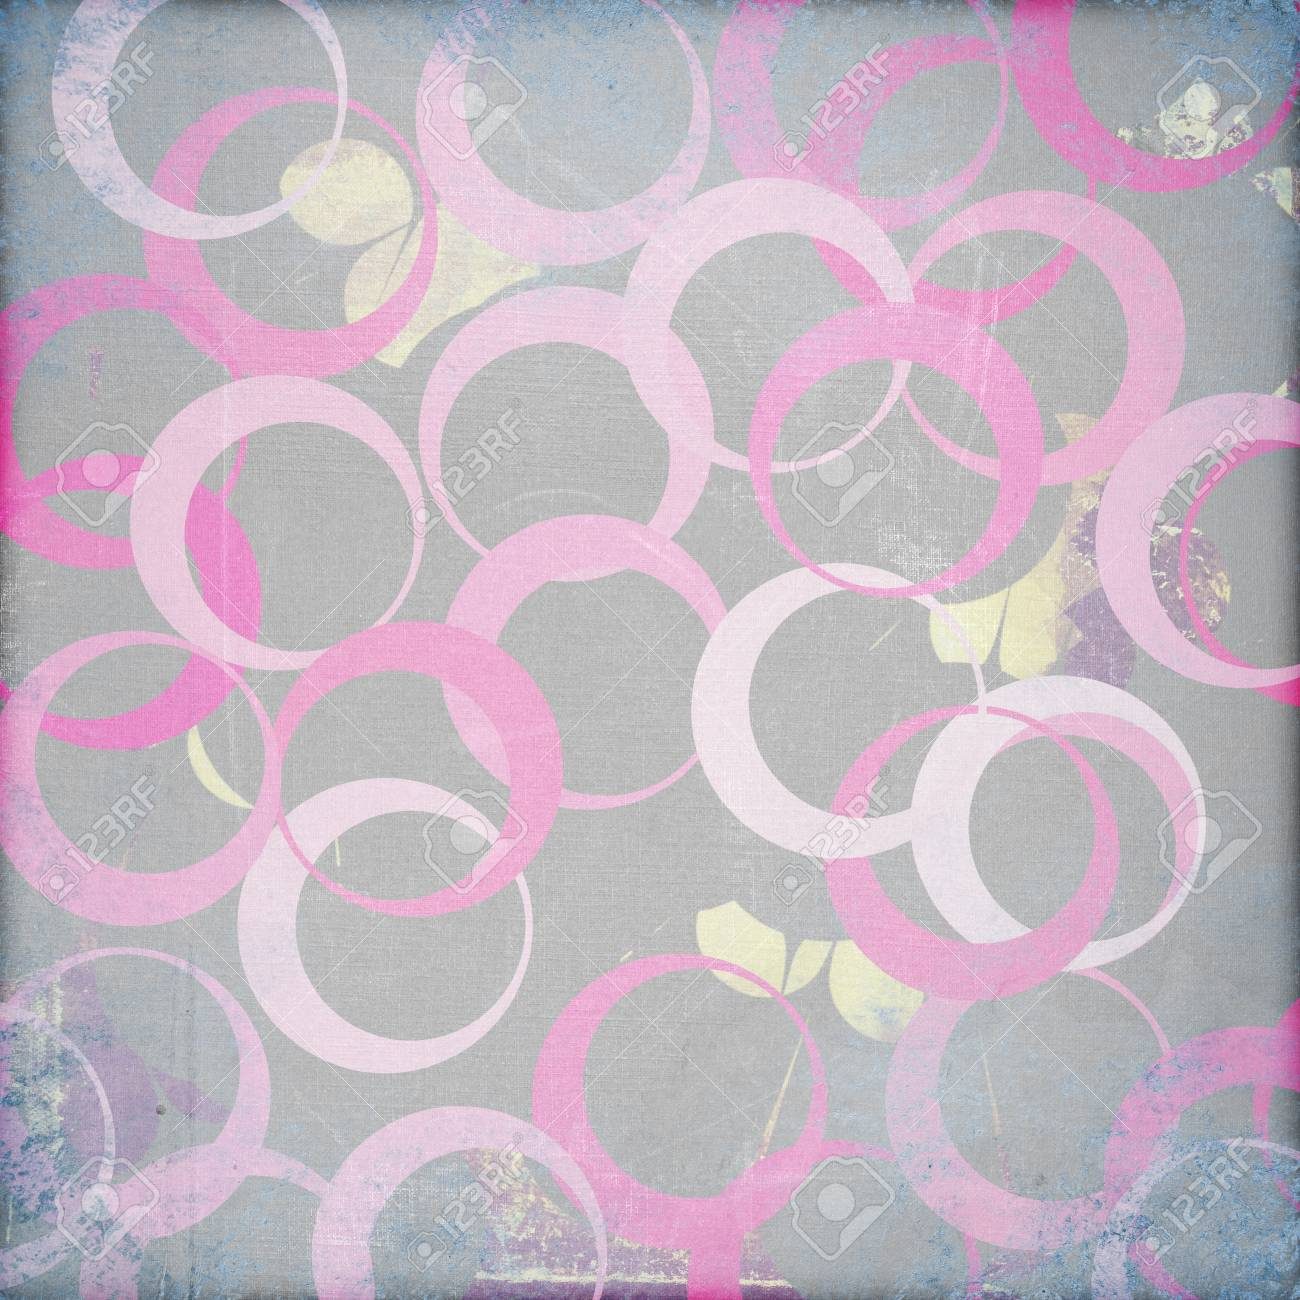 grunge retro paper texture, abstract  circles background Stock Photo - 16939352